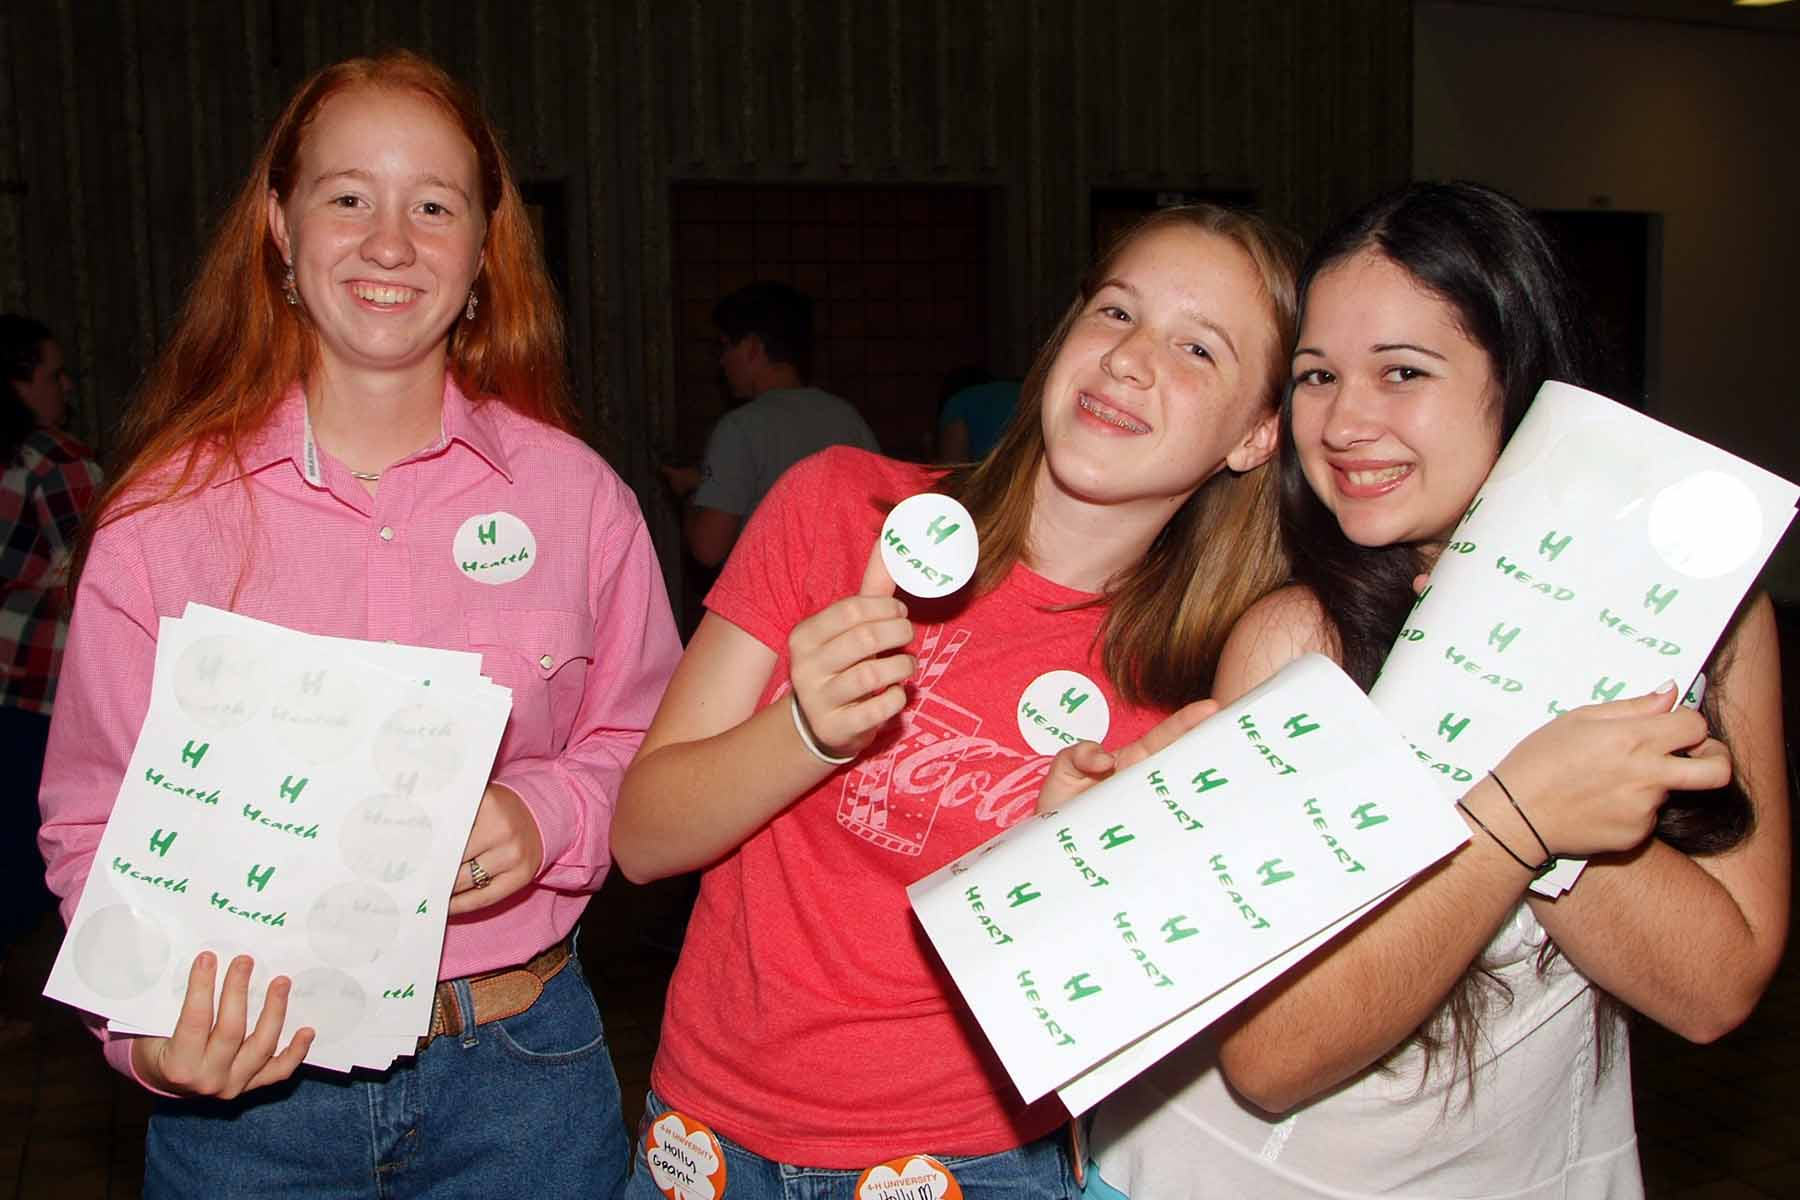 Girls with head, heart, health, hands stickers at 4-H University